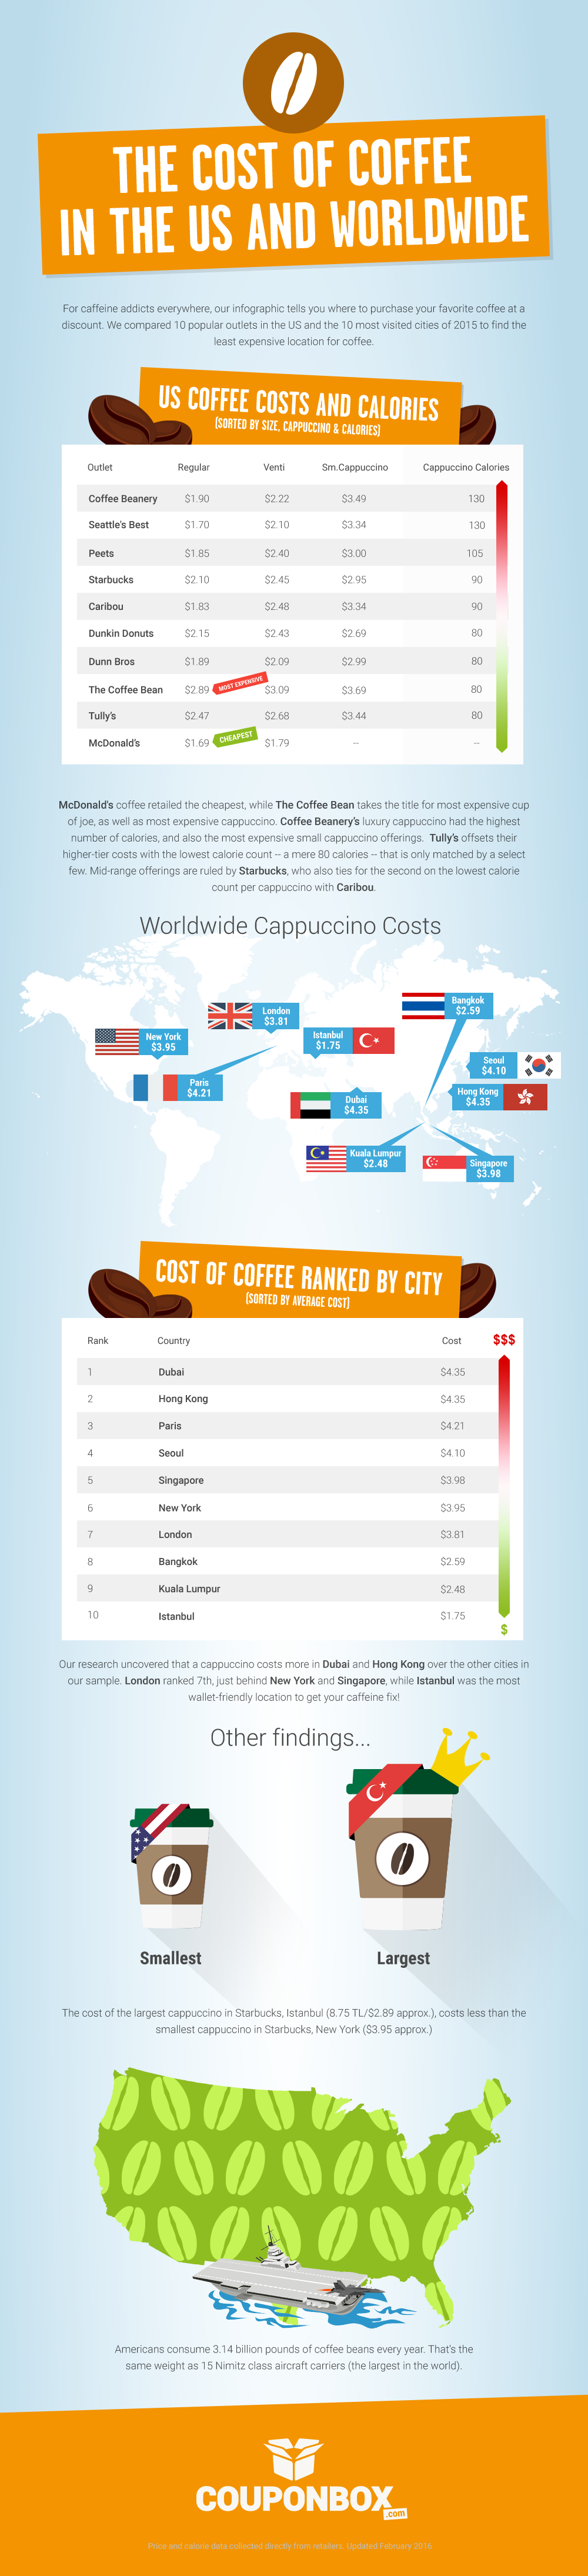 coffee-cost-usa-and-worldwide-infographic-plaza